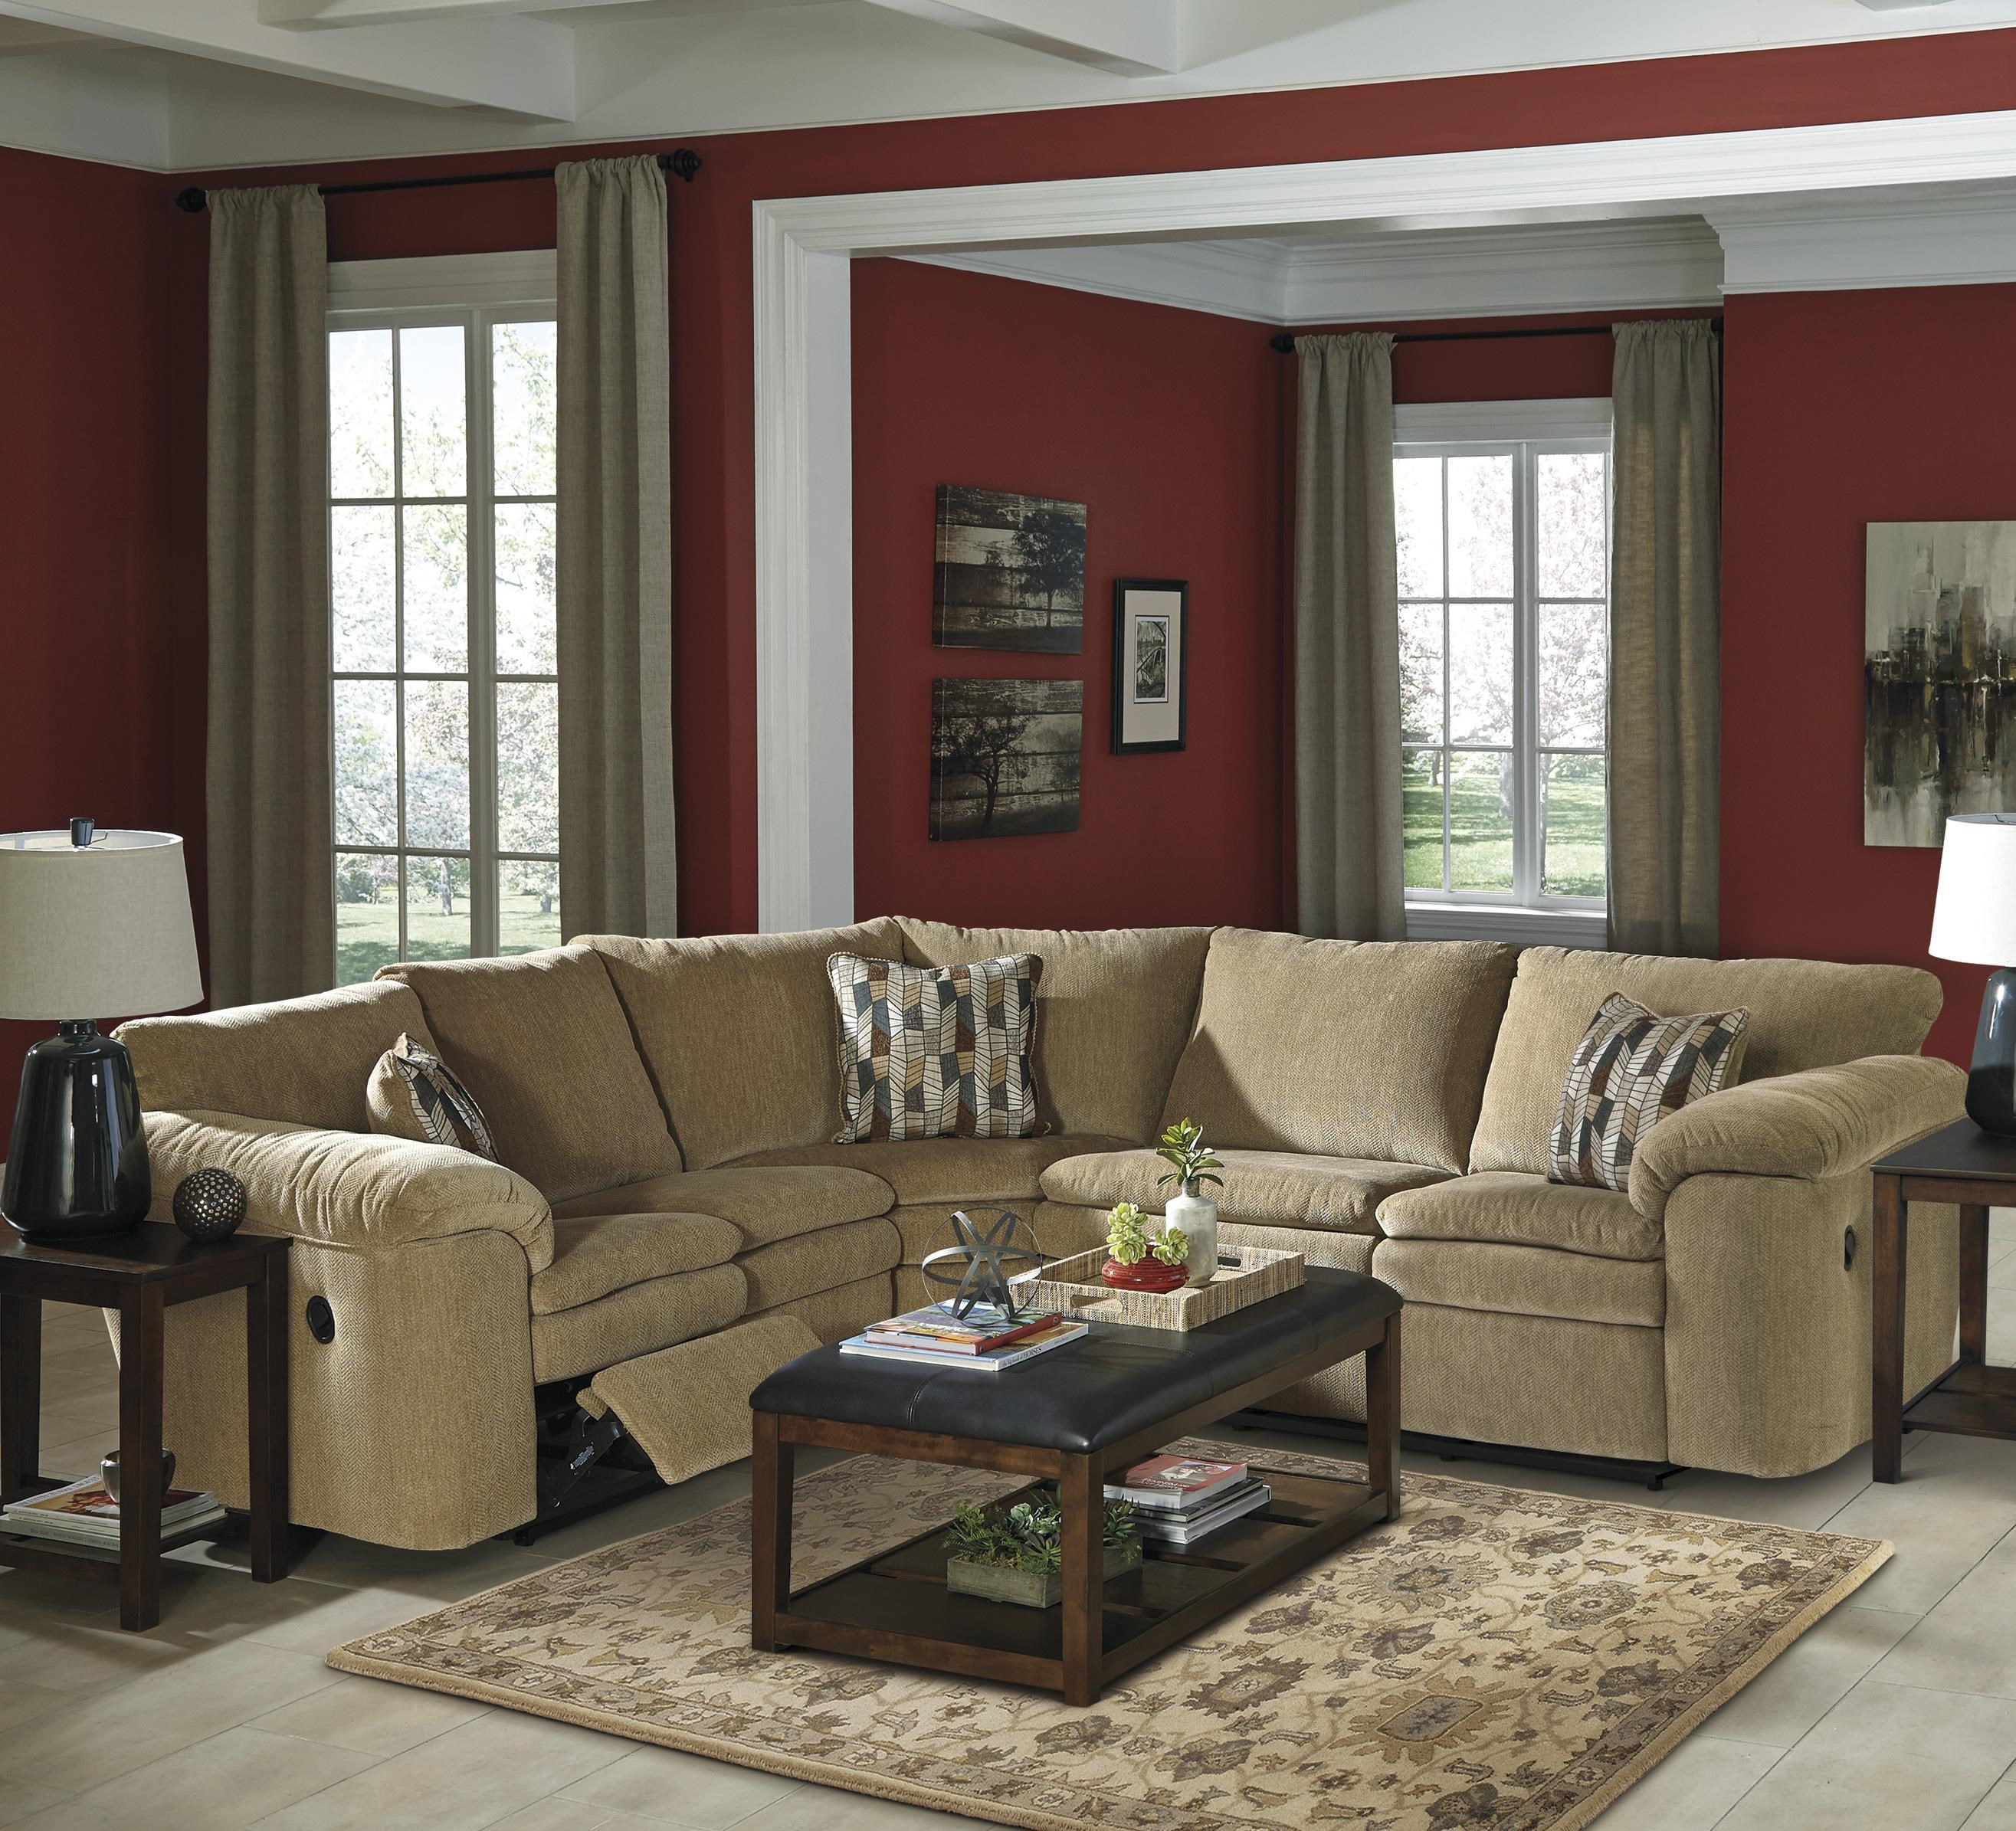 Signature Design by Ashley Coats Casual Contemporary 3-Piece Reclining Sectional with Pillow Arms : ashley reclining sectional - Sectionals, Sofas & Couches